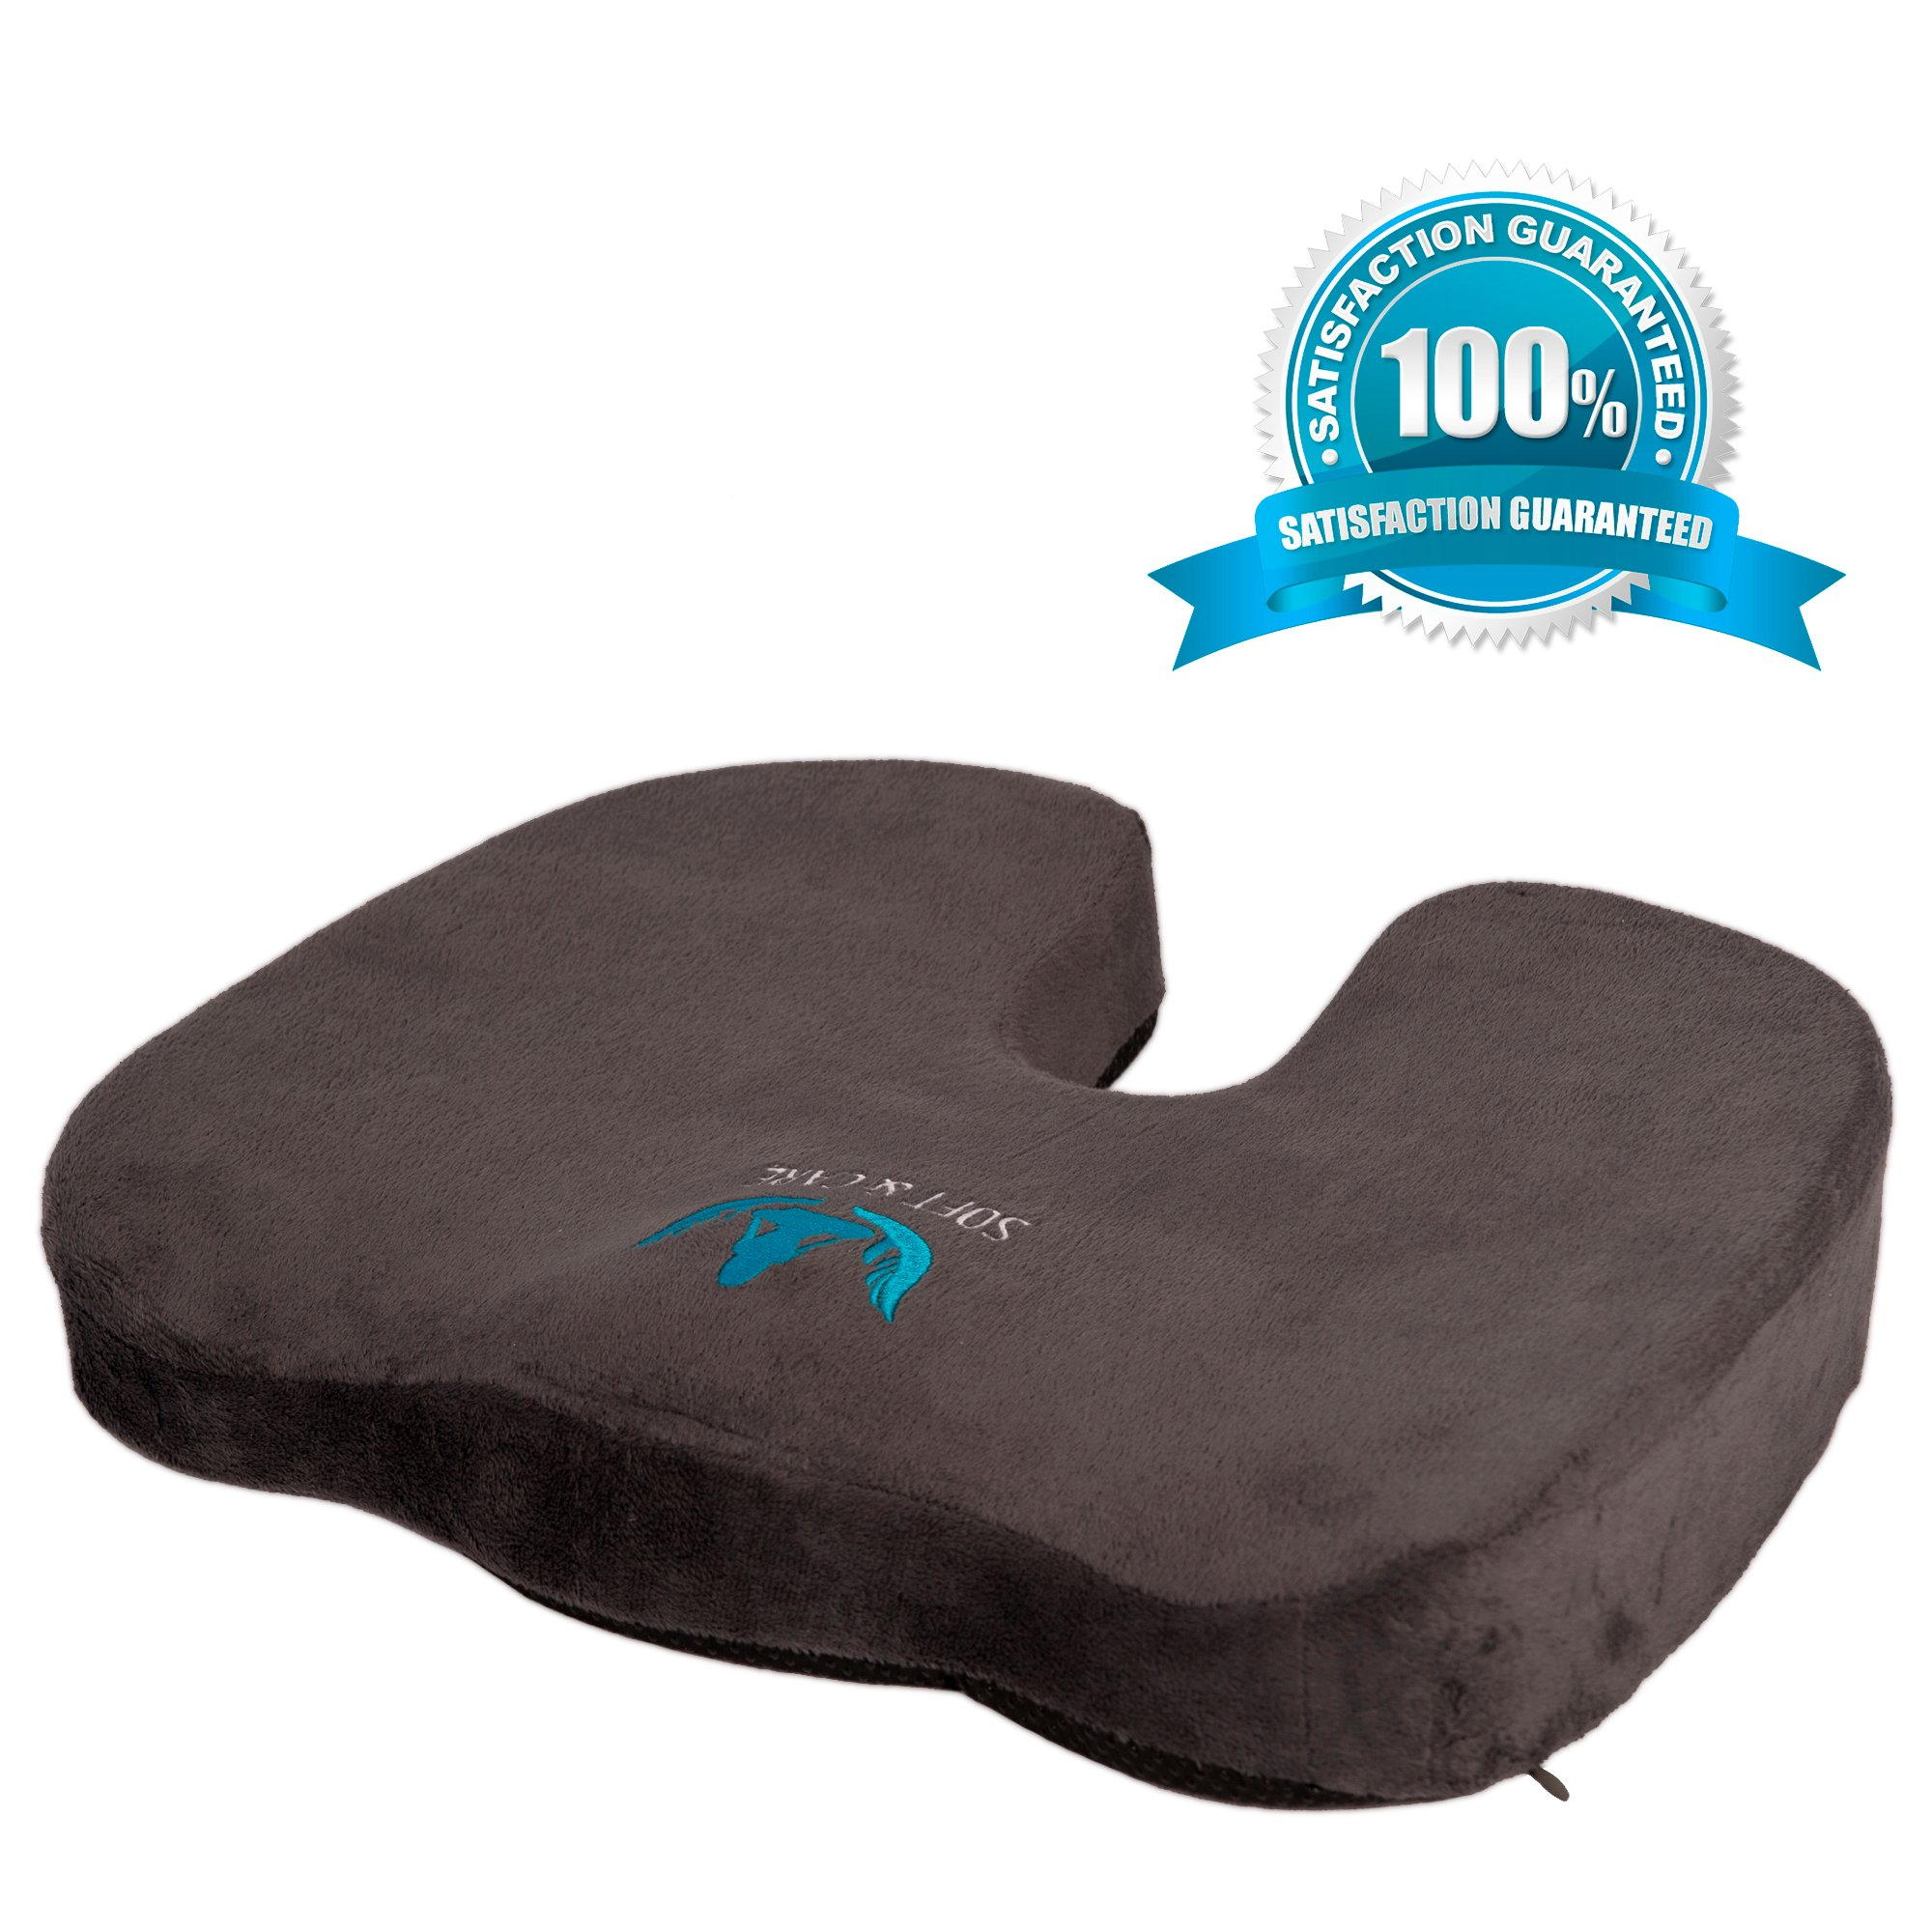 Buy Softacare Premium Orthopedic Seat Cushion Coccyx Cushion Best